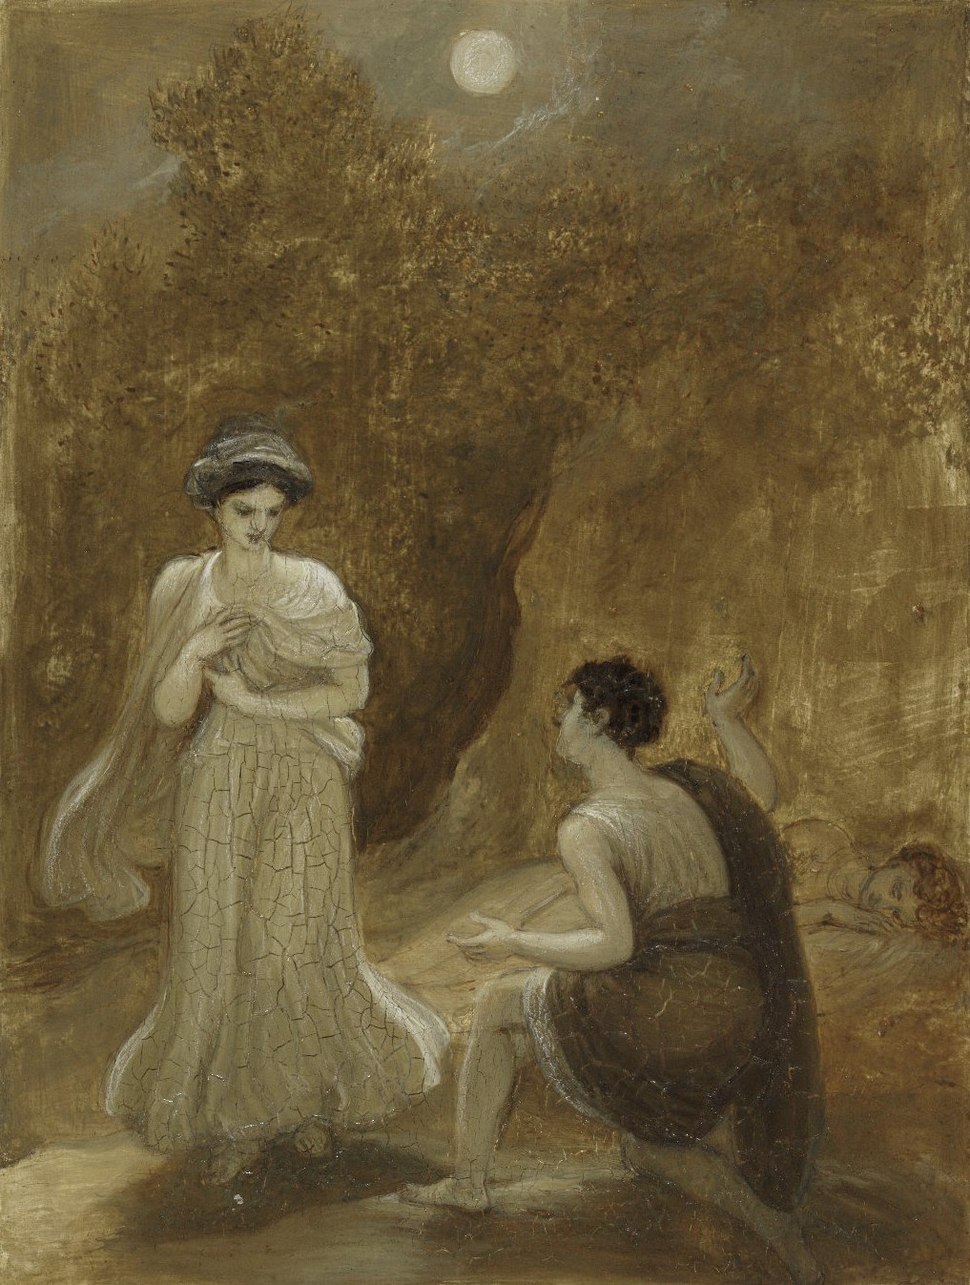 Lysander declaring his passion to Helena (Smirke, c. 1820-1825)